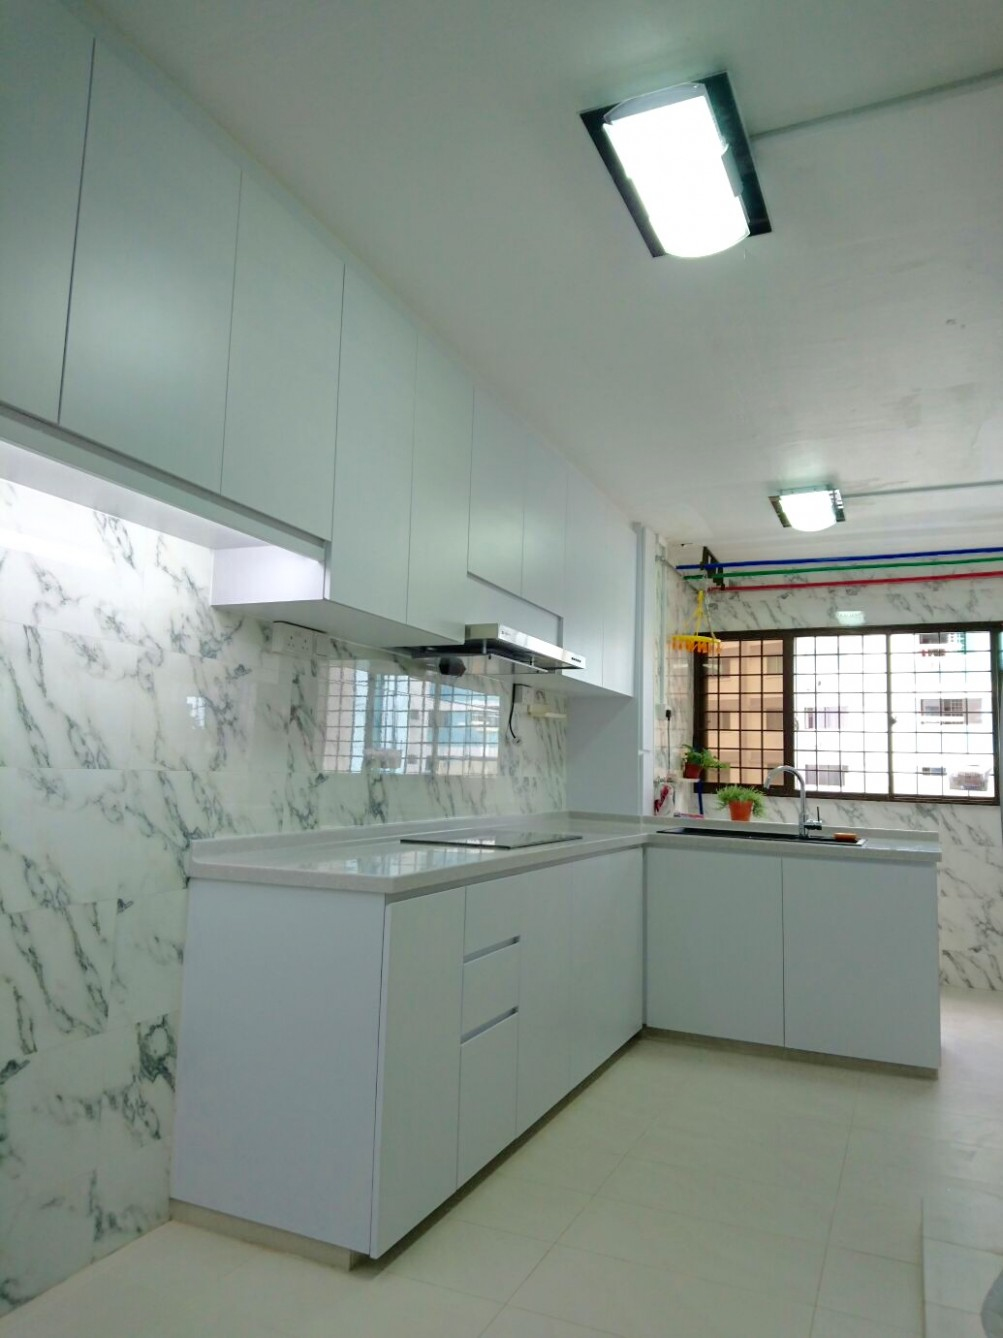 Which type of kitchen cabinet best for you? - Kitchen Cabinet Specialist Singapore